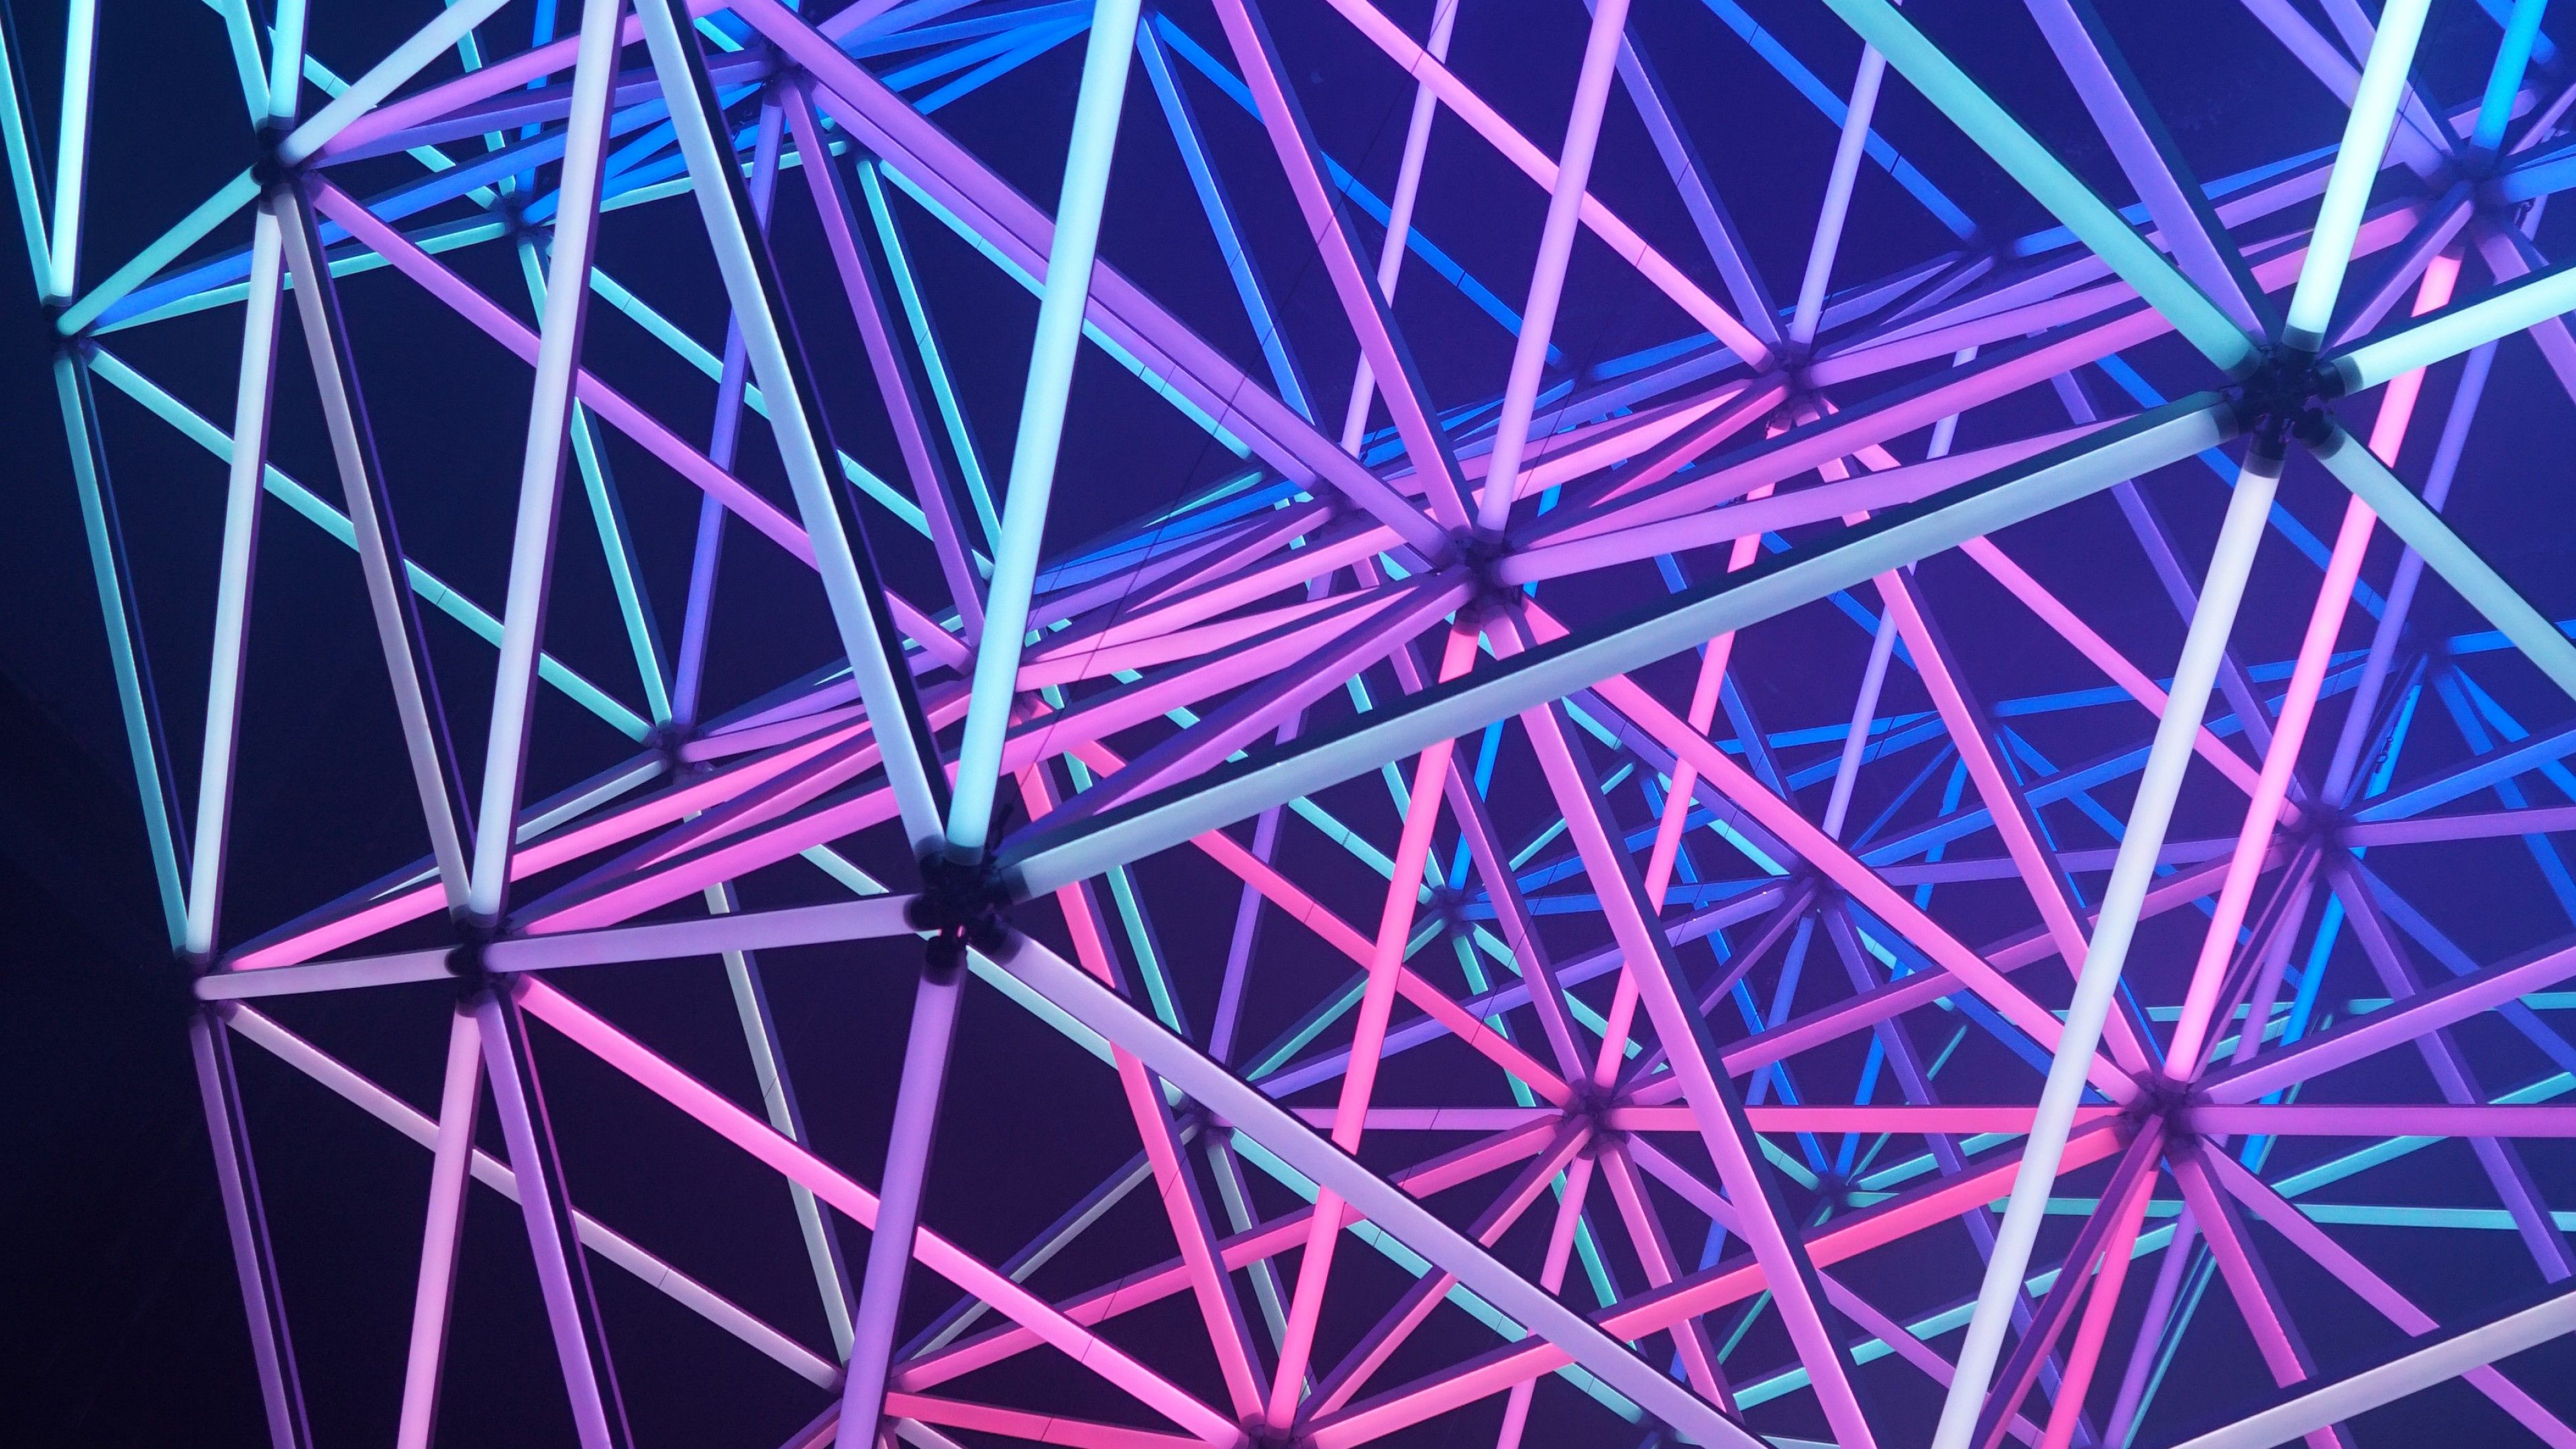 amoled neon android wallpaperaccess wallpapers triangles structure 4k abstract desktop iphone mobile